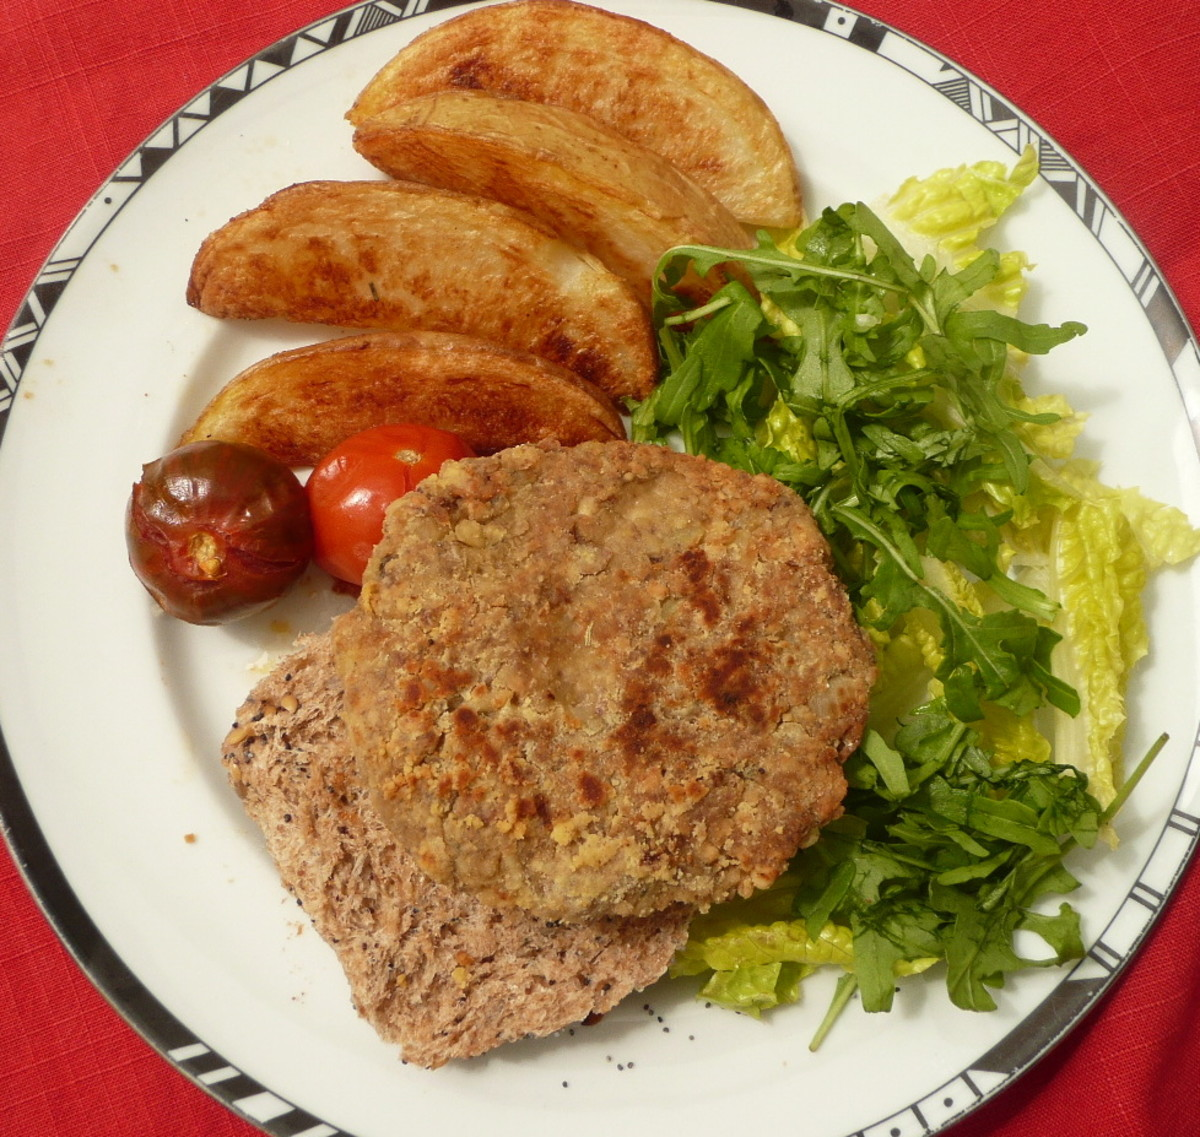 Gluten-Free Nut Burgers with Shiitake Mushrooms